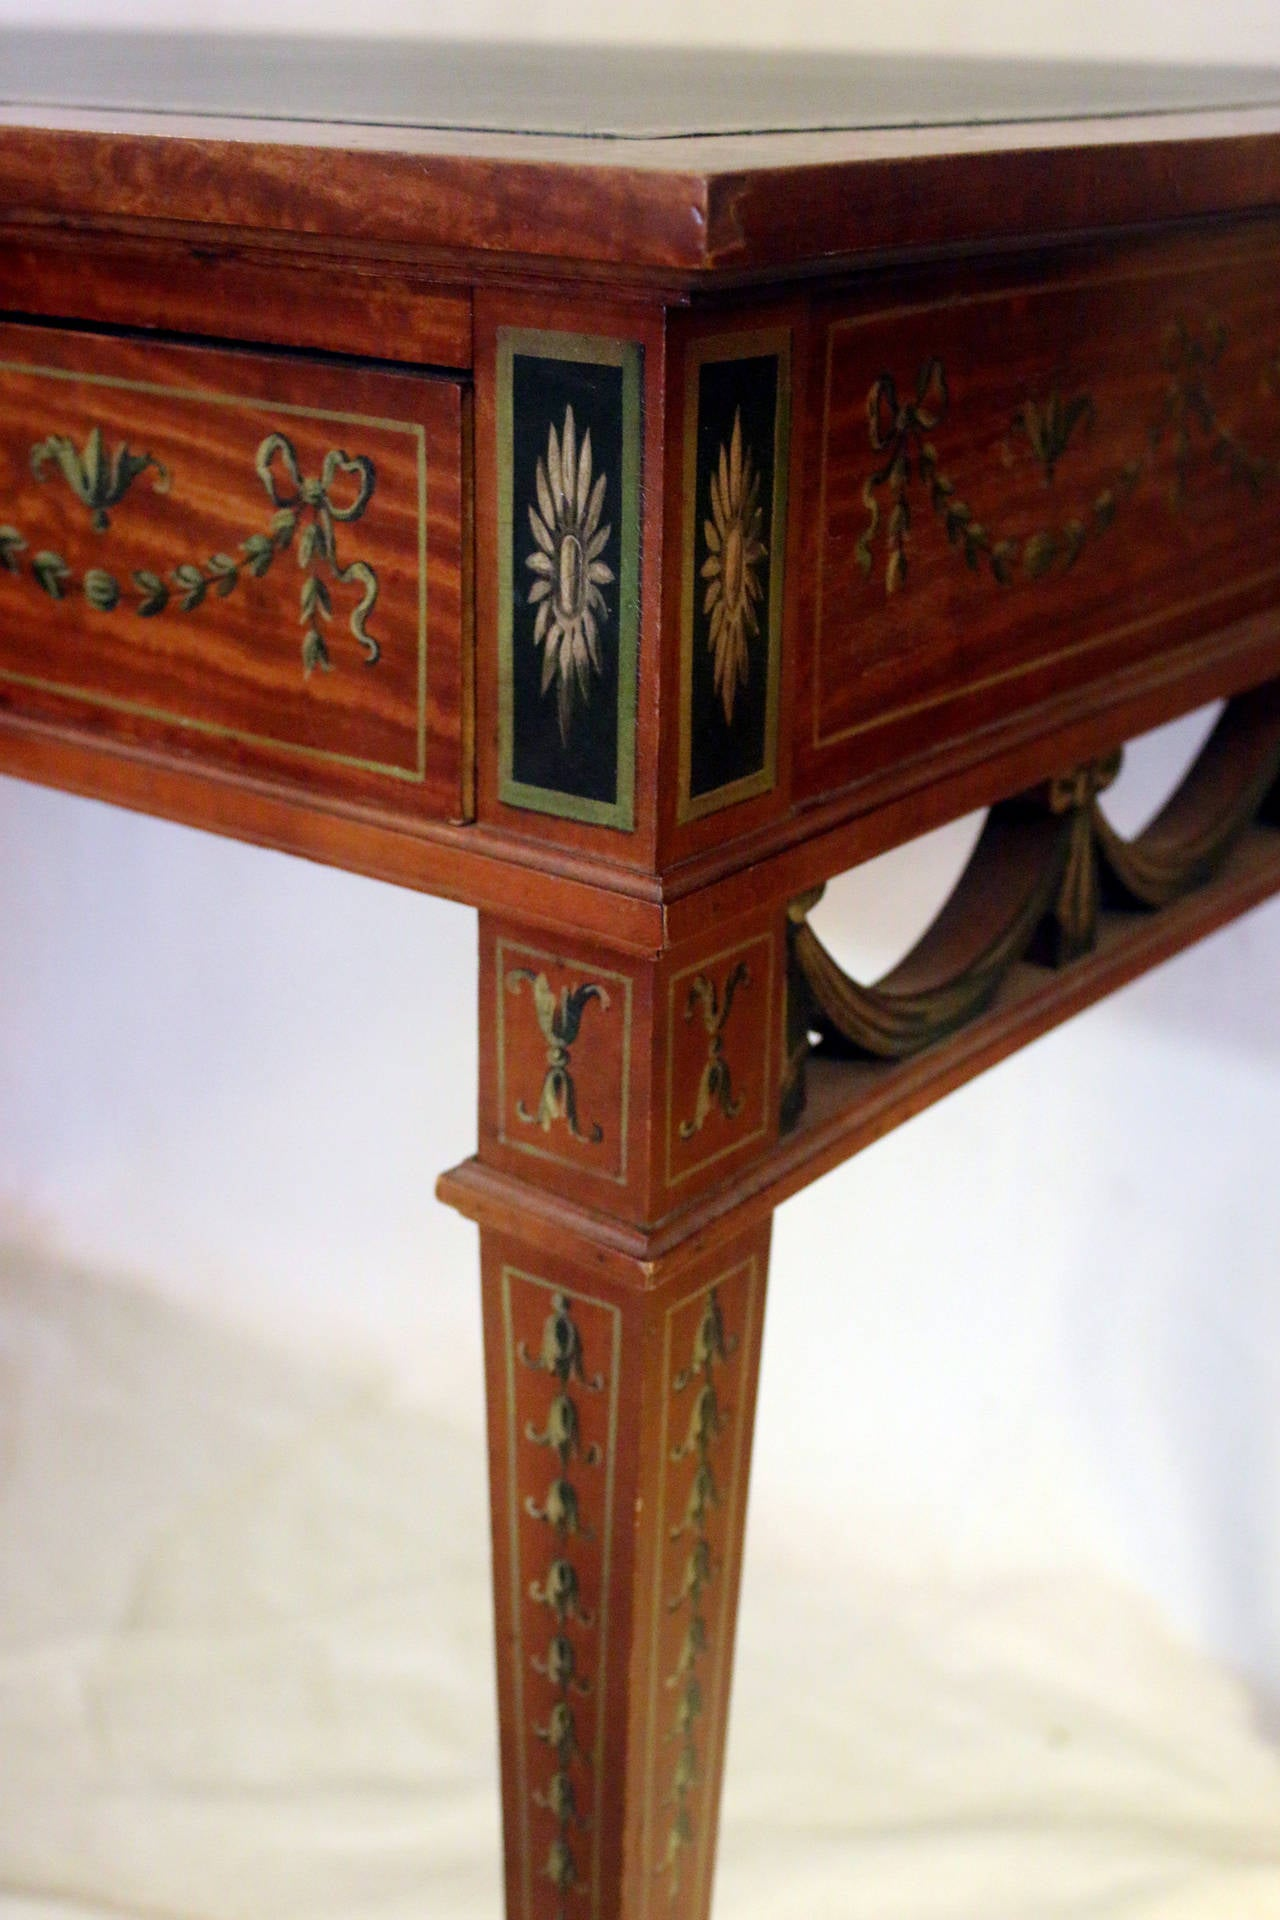 19th Century English Adam Style Satinwood Desk In Good Condition For Sale In Savannah, GA